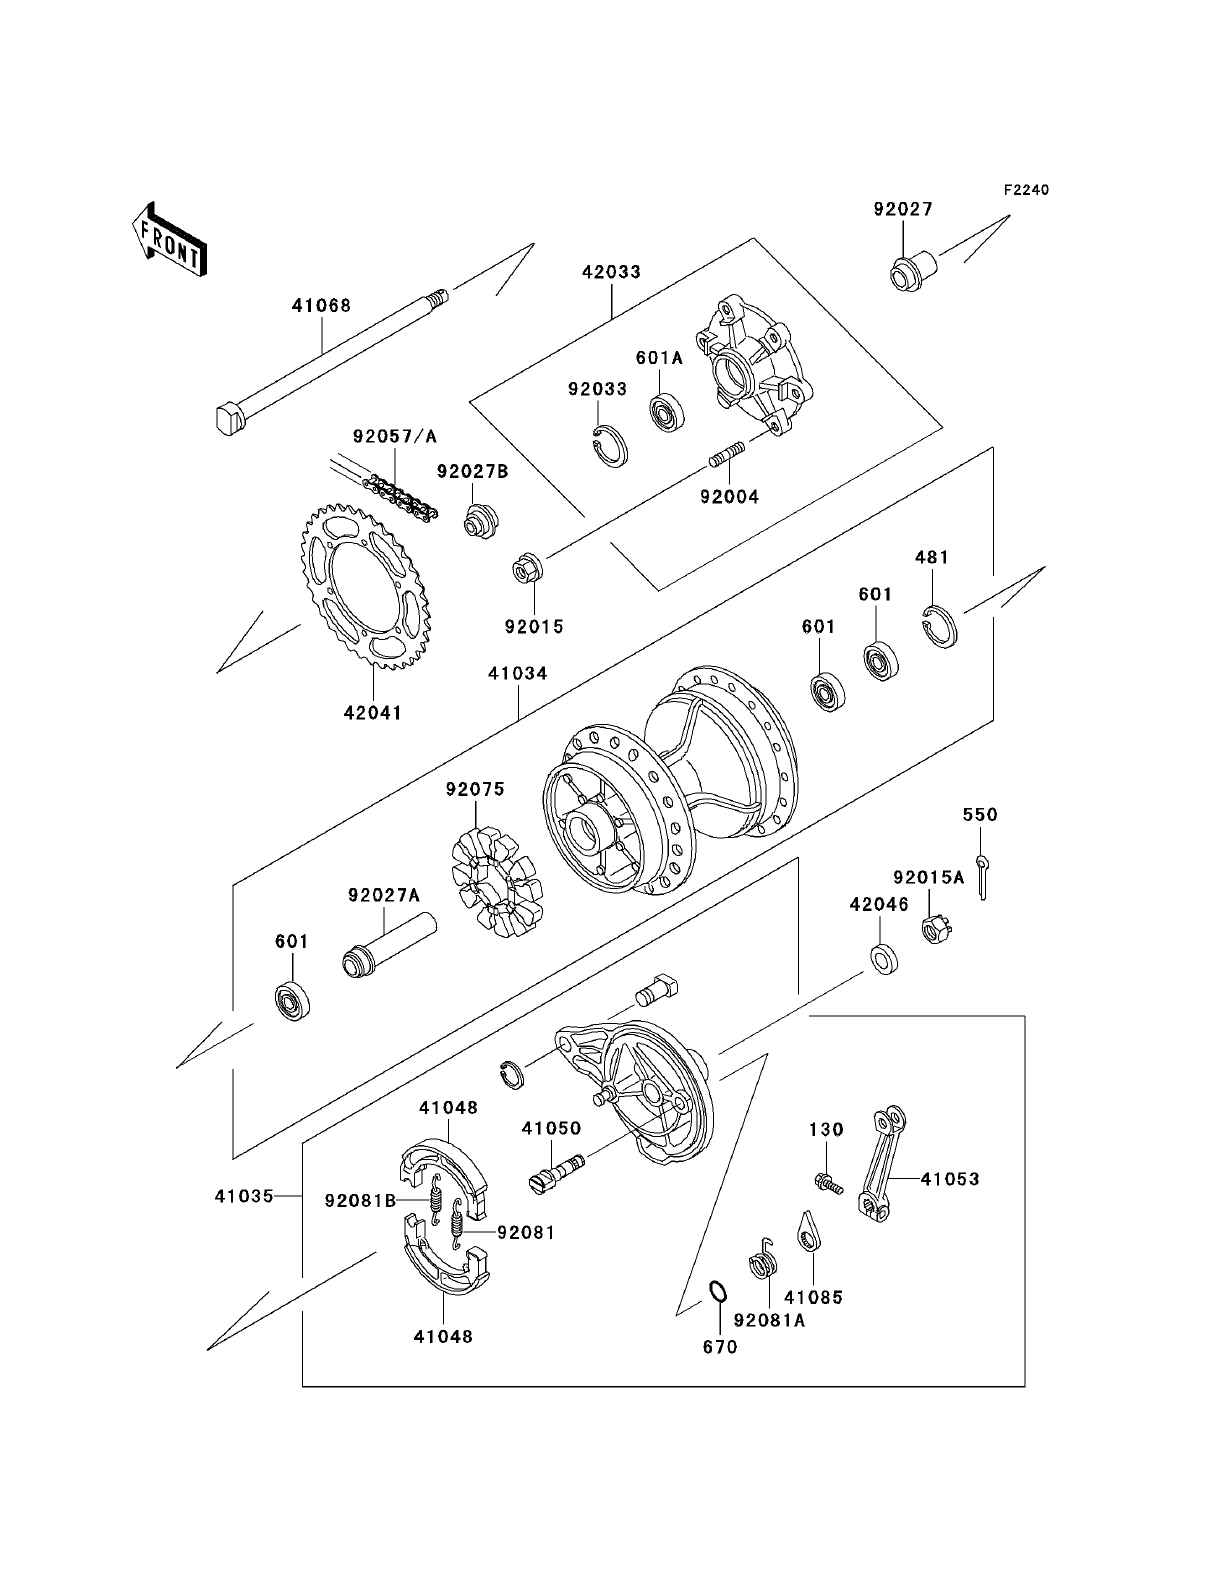 Kawasaki Klr250 Parts Diagrams